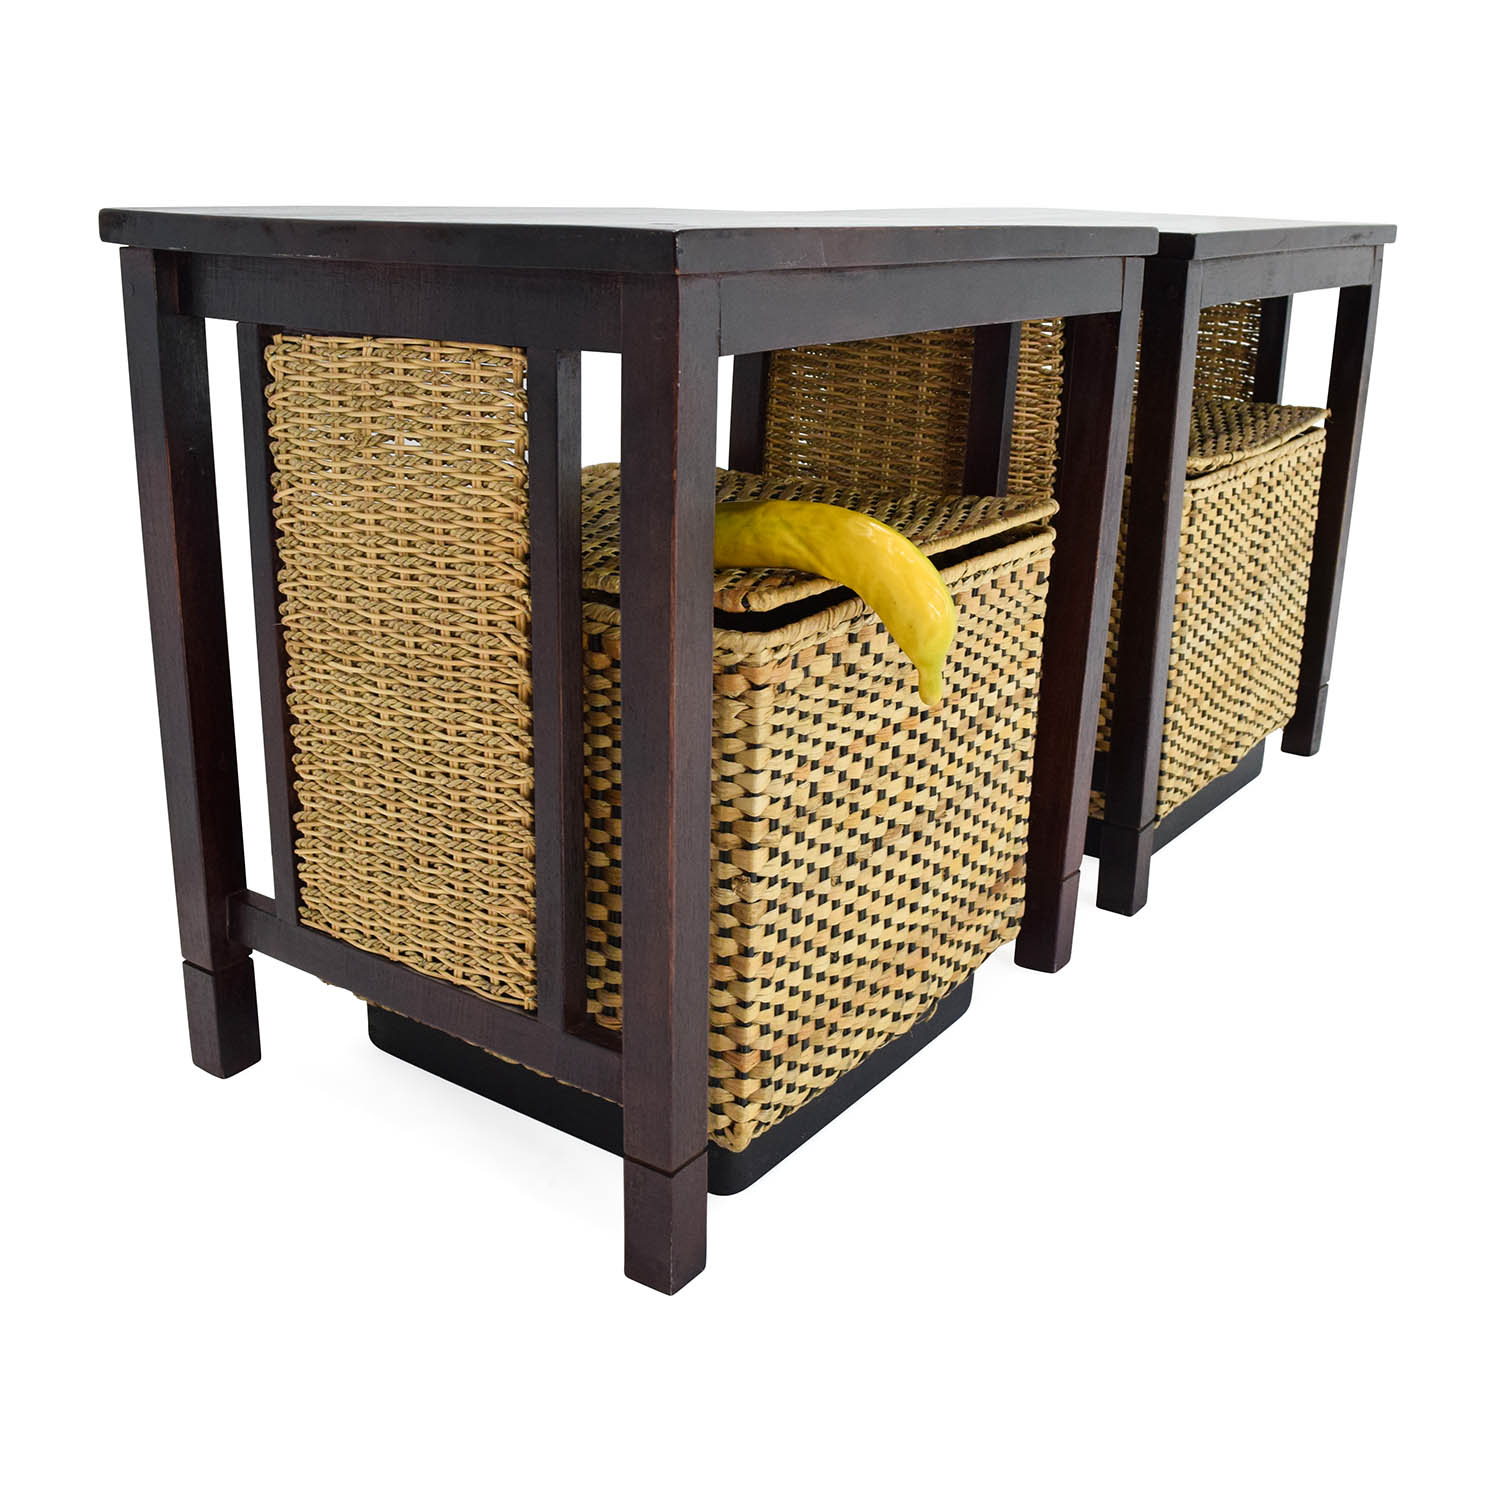 OFF Unknown Brand Paif of Side Tables with Baskets Storage